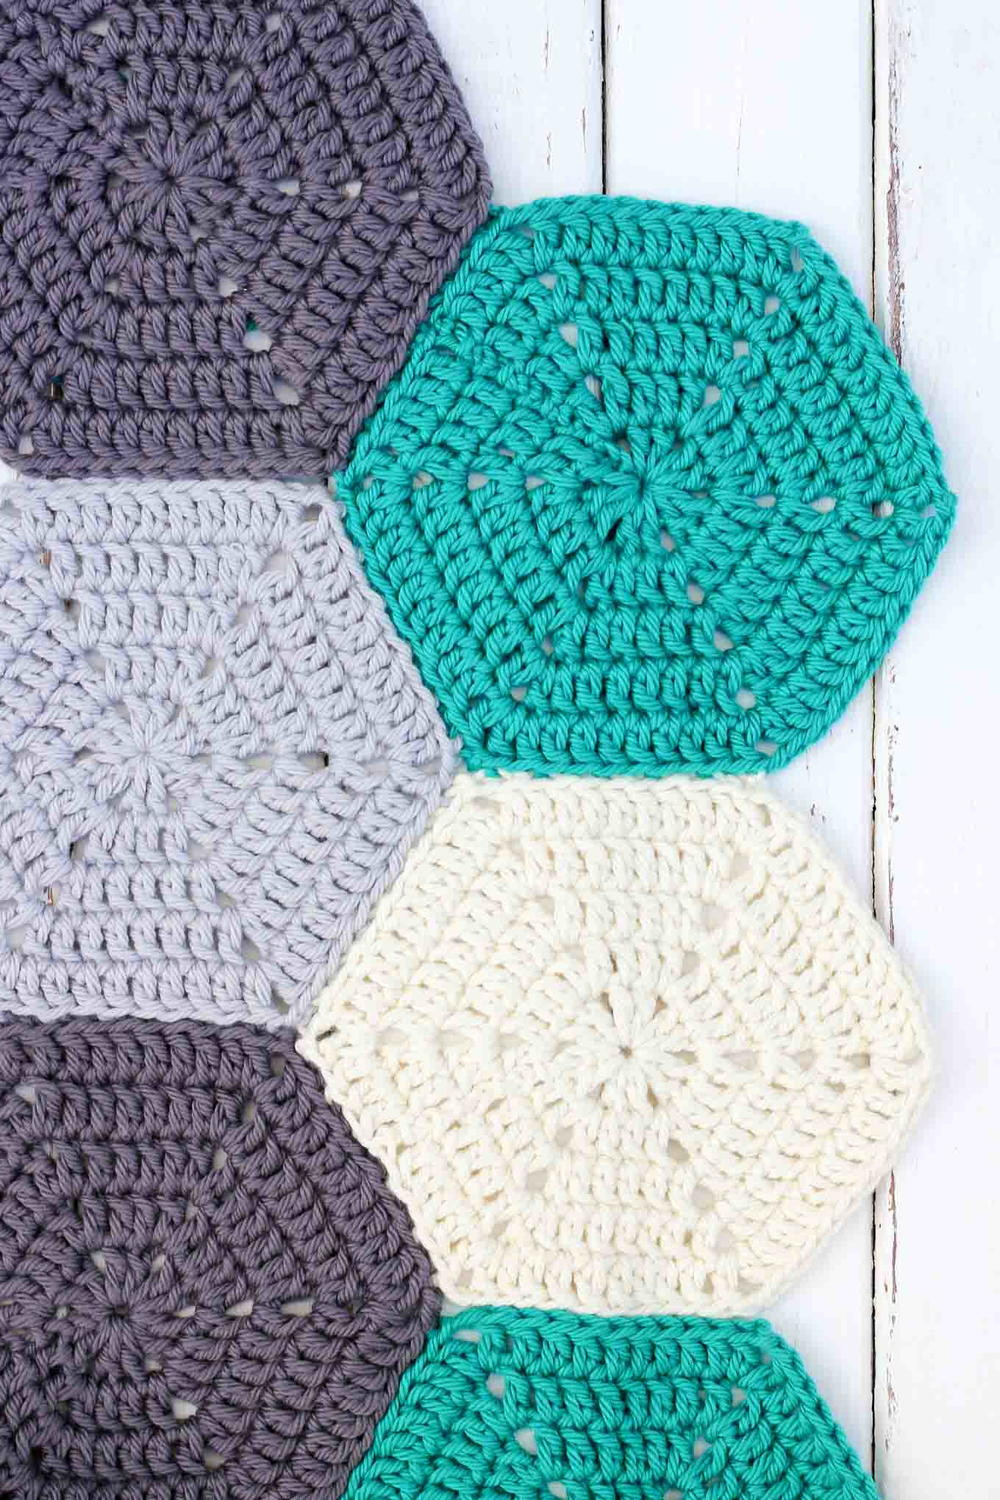 Beautiful How to Join Crochet Hexagons with Invisible Seams Crochet Patterns Videos Of Wonderful 43 Ideas Crochet Patterns Videos